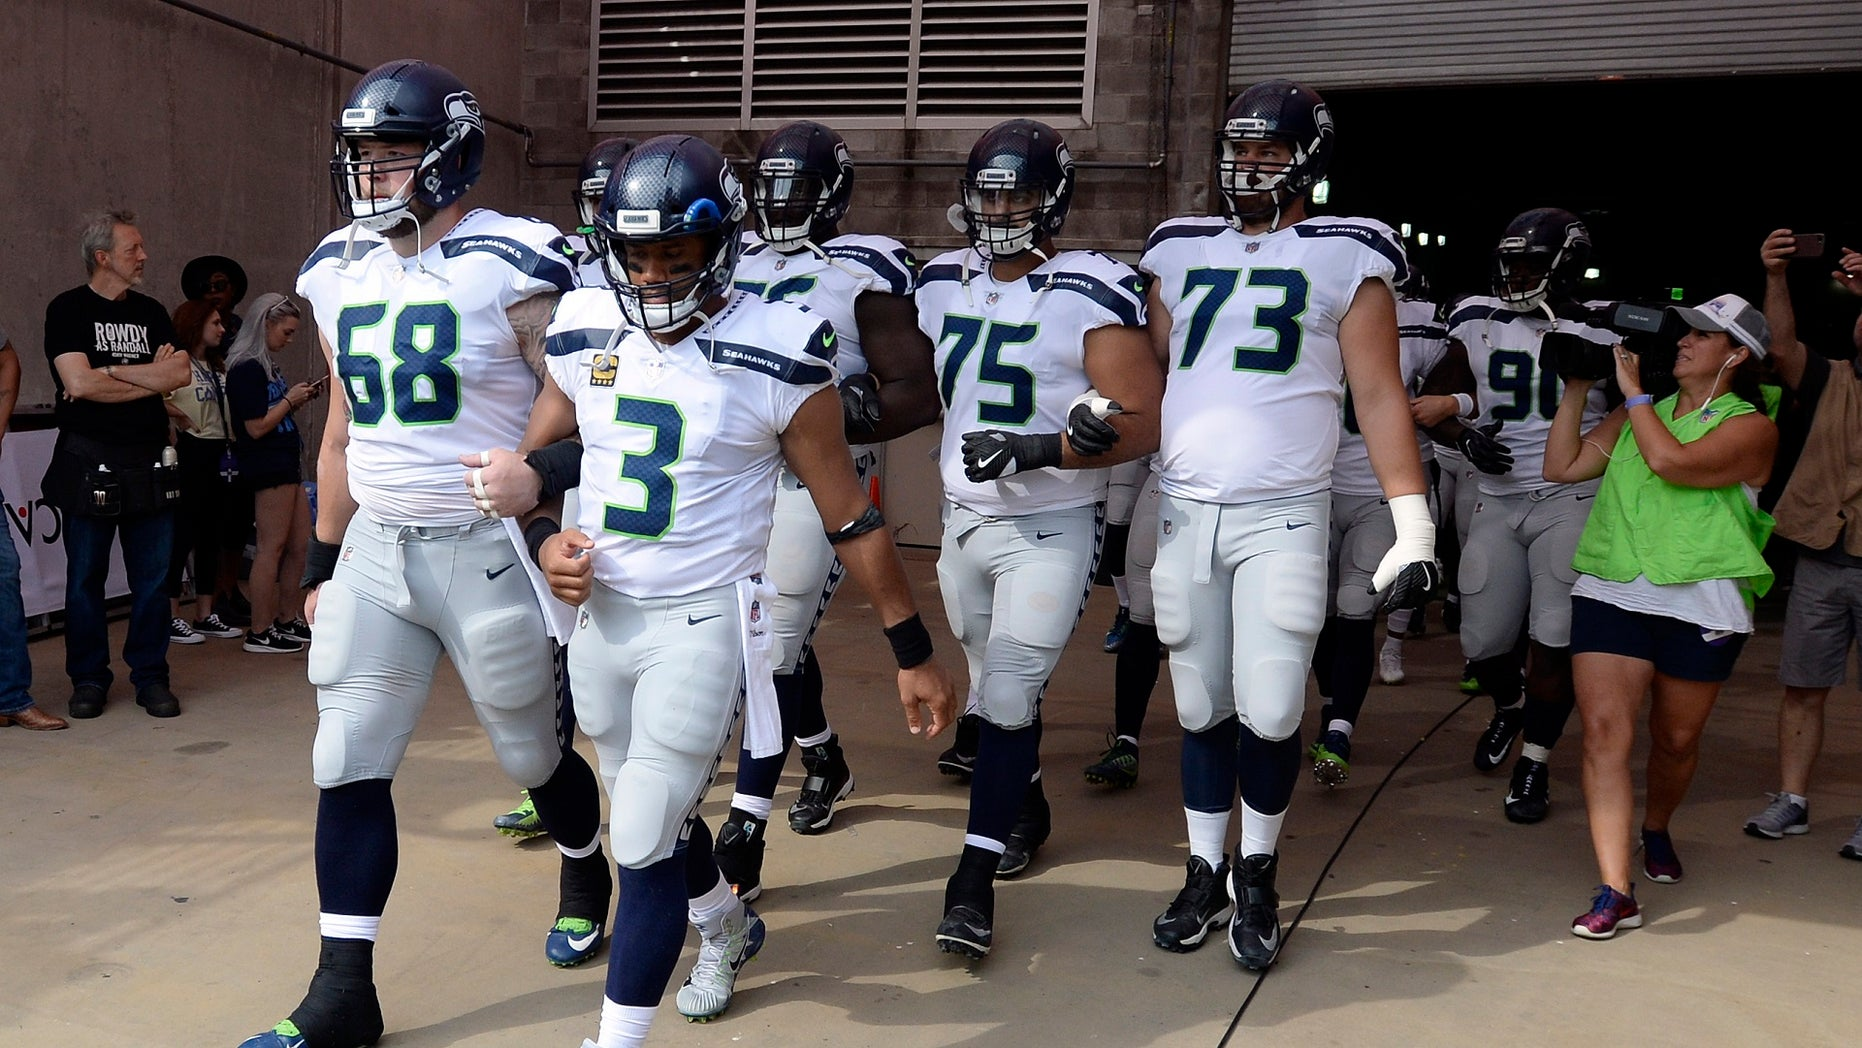 """The Seattle Seahawks announced Friday the creation of the """"Seahawks Players Equality & Justice for All Action Fund."""""""